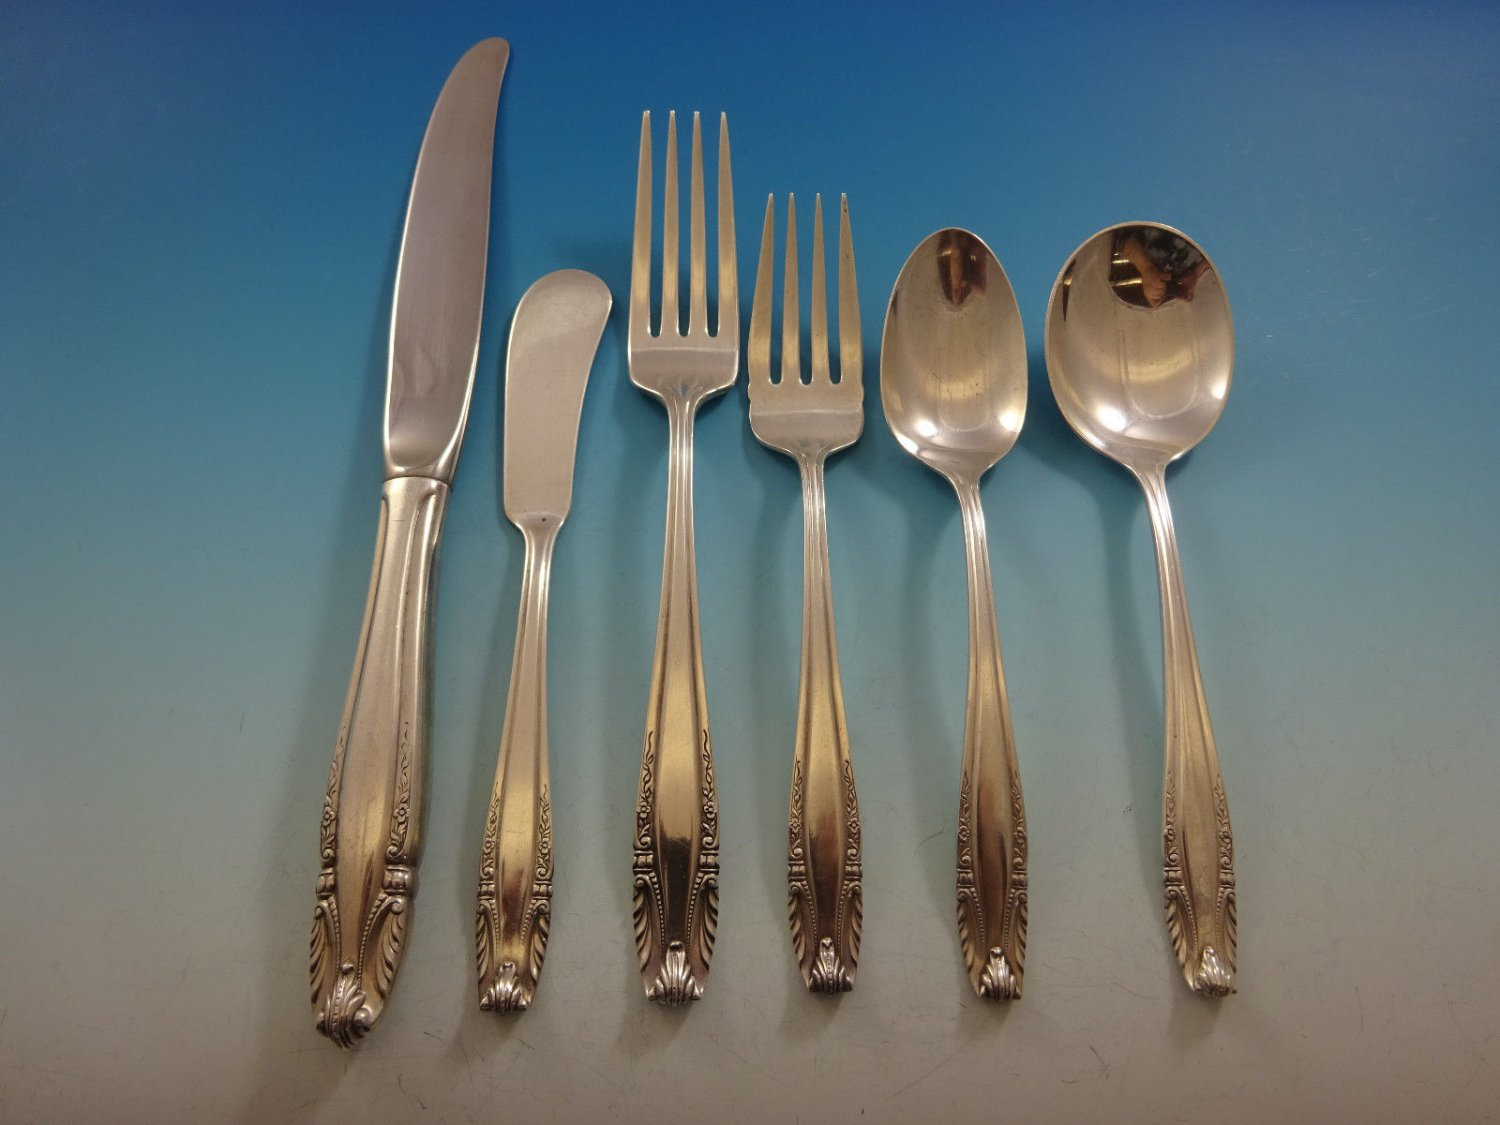 Stradivari by Wallace Sterling Silver Flatware Set For 12 Service 75 Pieces